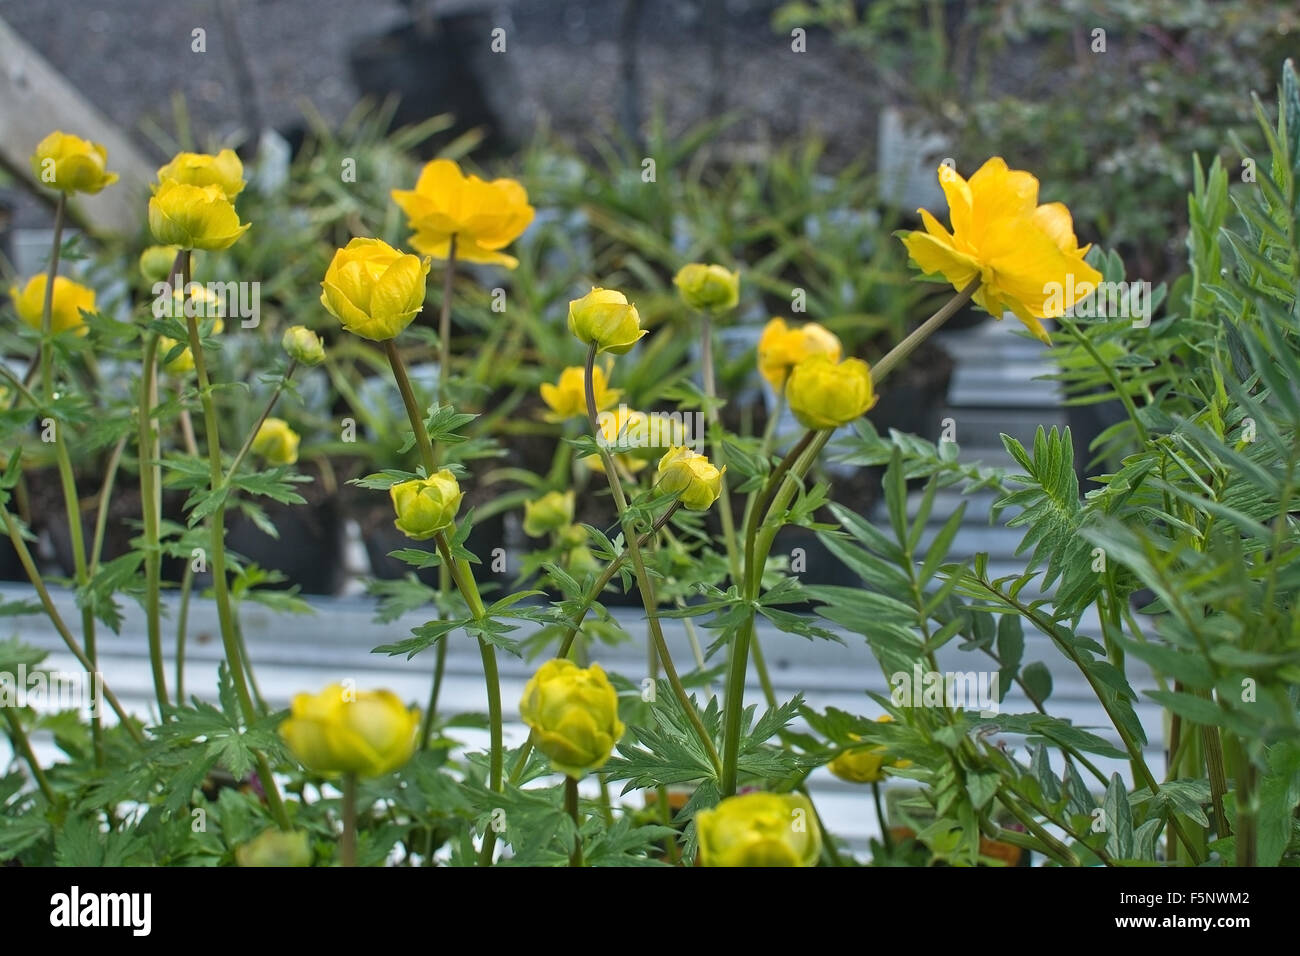 Yellow butter ball flowers and buds in may stock photo 89606274 alamy yellow butter ball flowers and buds in may mightylinksfo